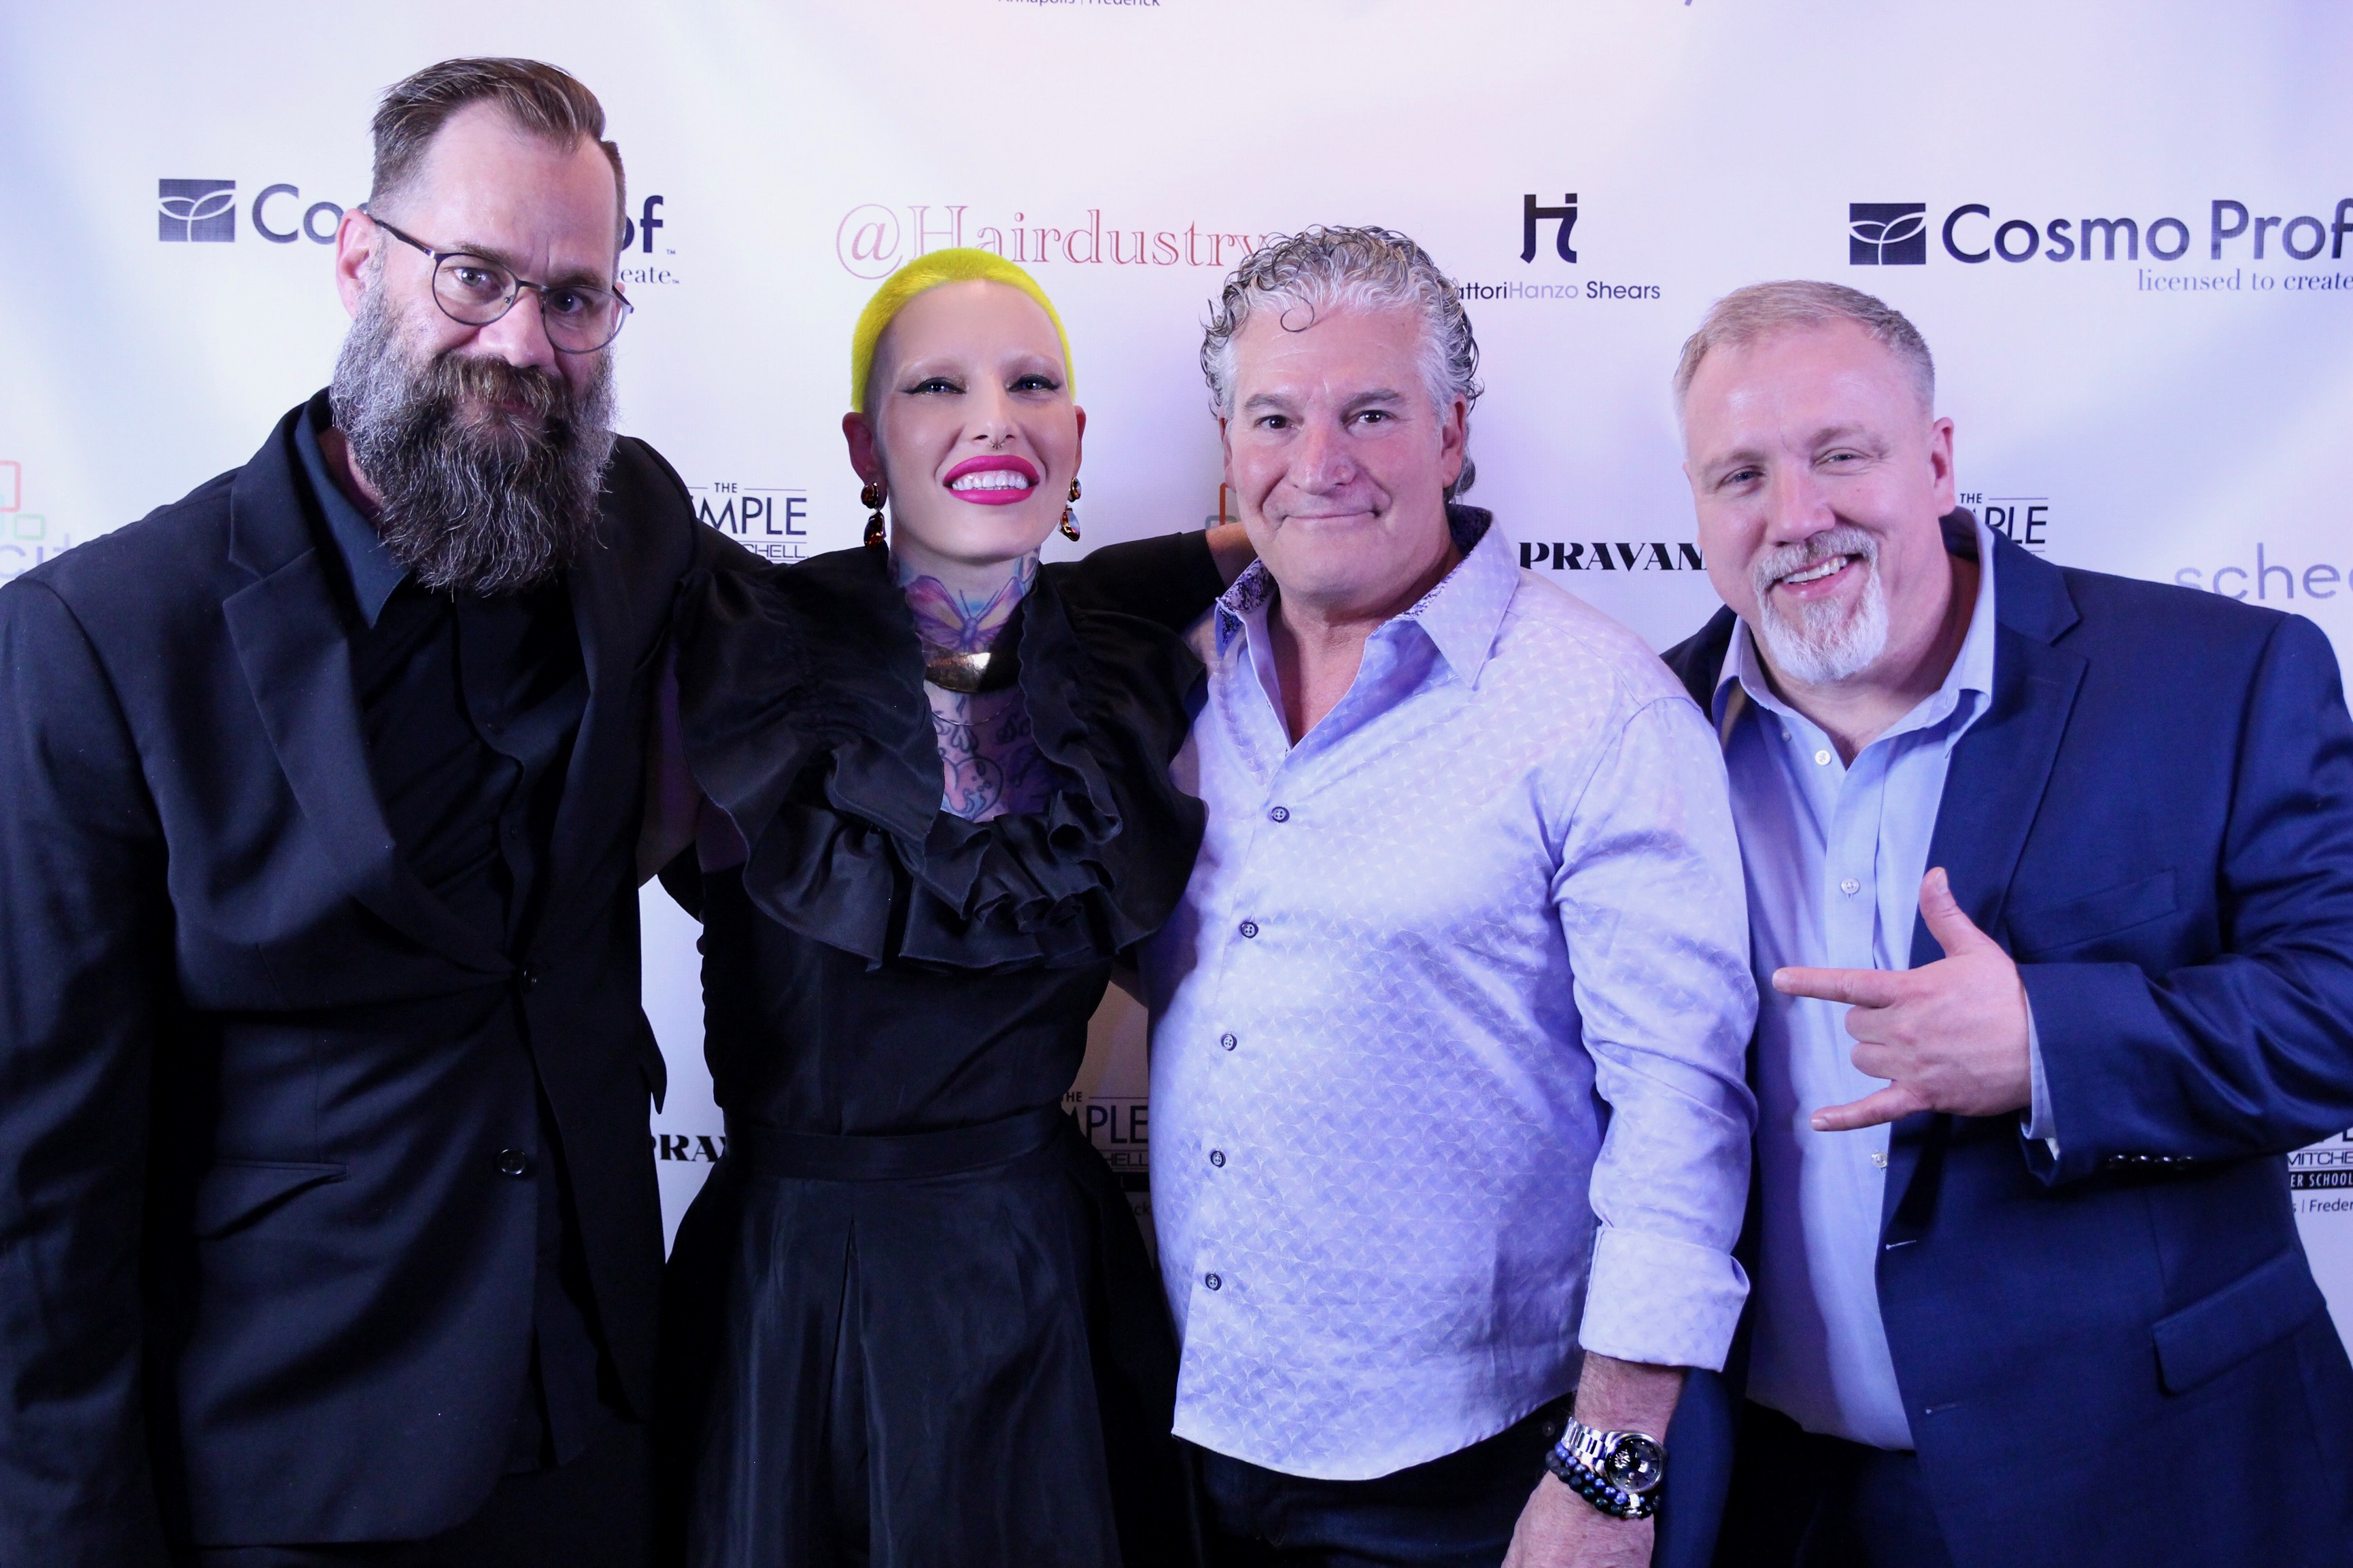 l-to-r: Corey Grant from Hairdustry, Pravana Collective artist and Schedulicity Advocate Presley Poe, Schedulicity CEO + Founder Jerry Nettuno with Tony Stuart from Hairdustry